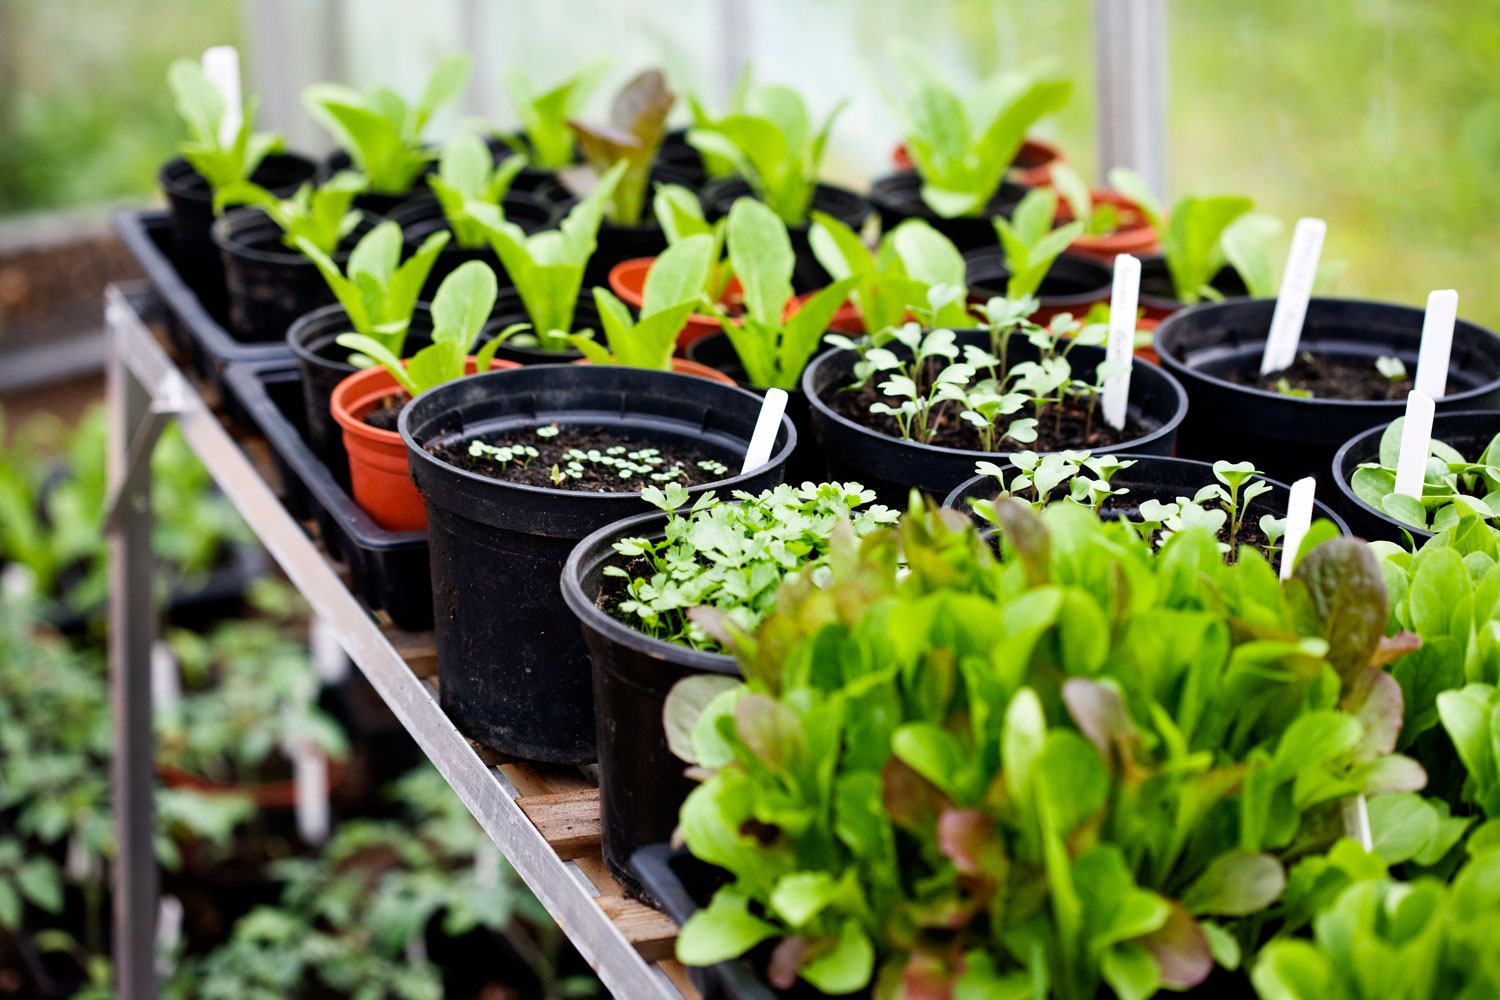 Herbs growing in small pots.